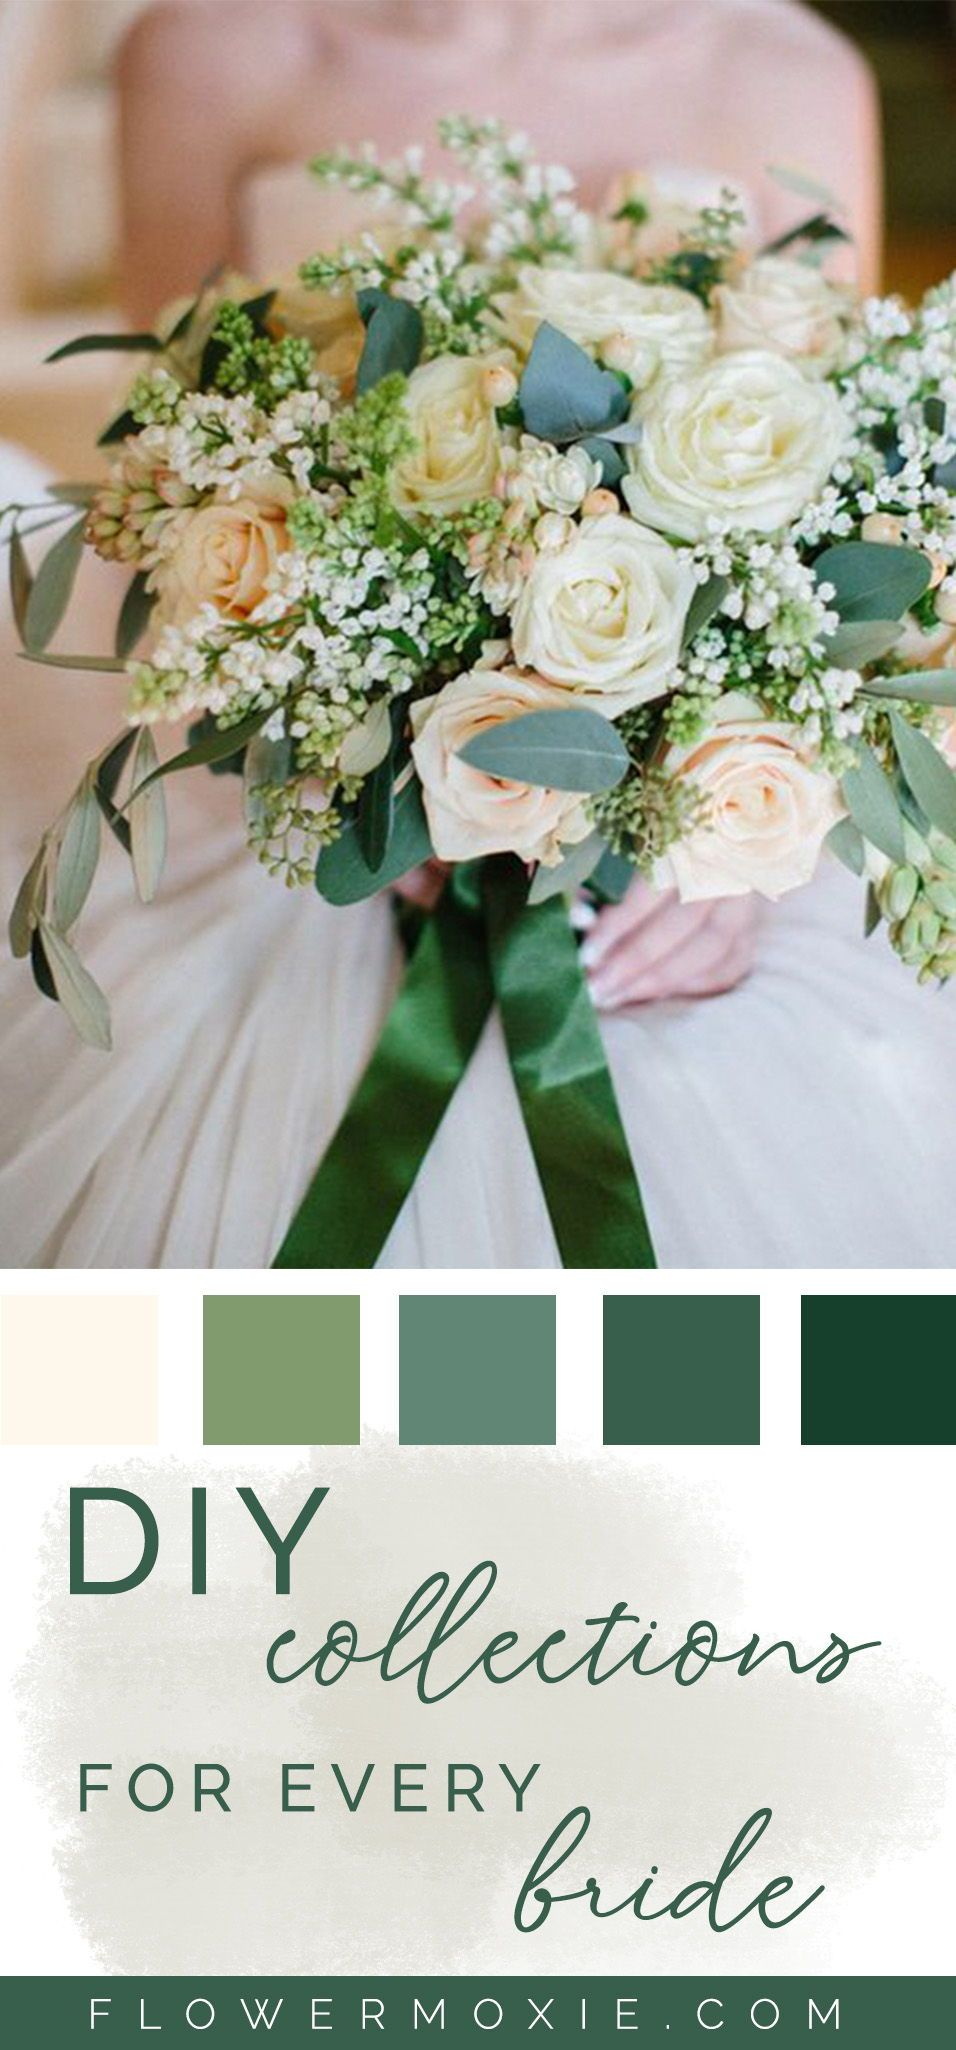 Get Inspired By Our Wedding Flower Packages Mix Match Flowers To Achieve The Look You Bulk Wedding Flowers Online Wedding Flowers Wholesale Flowers Wedding